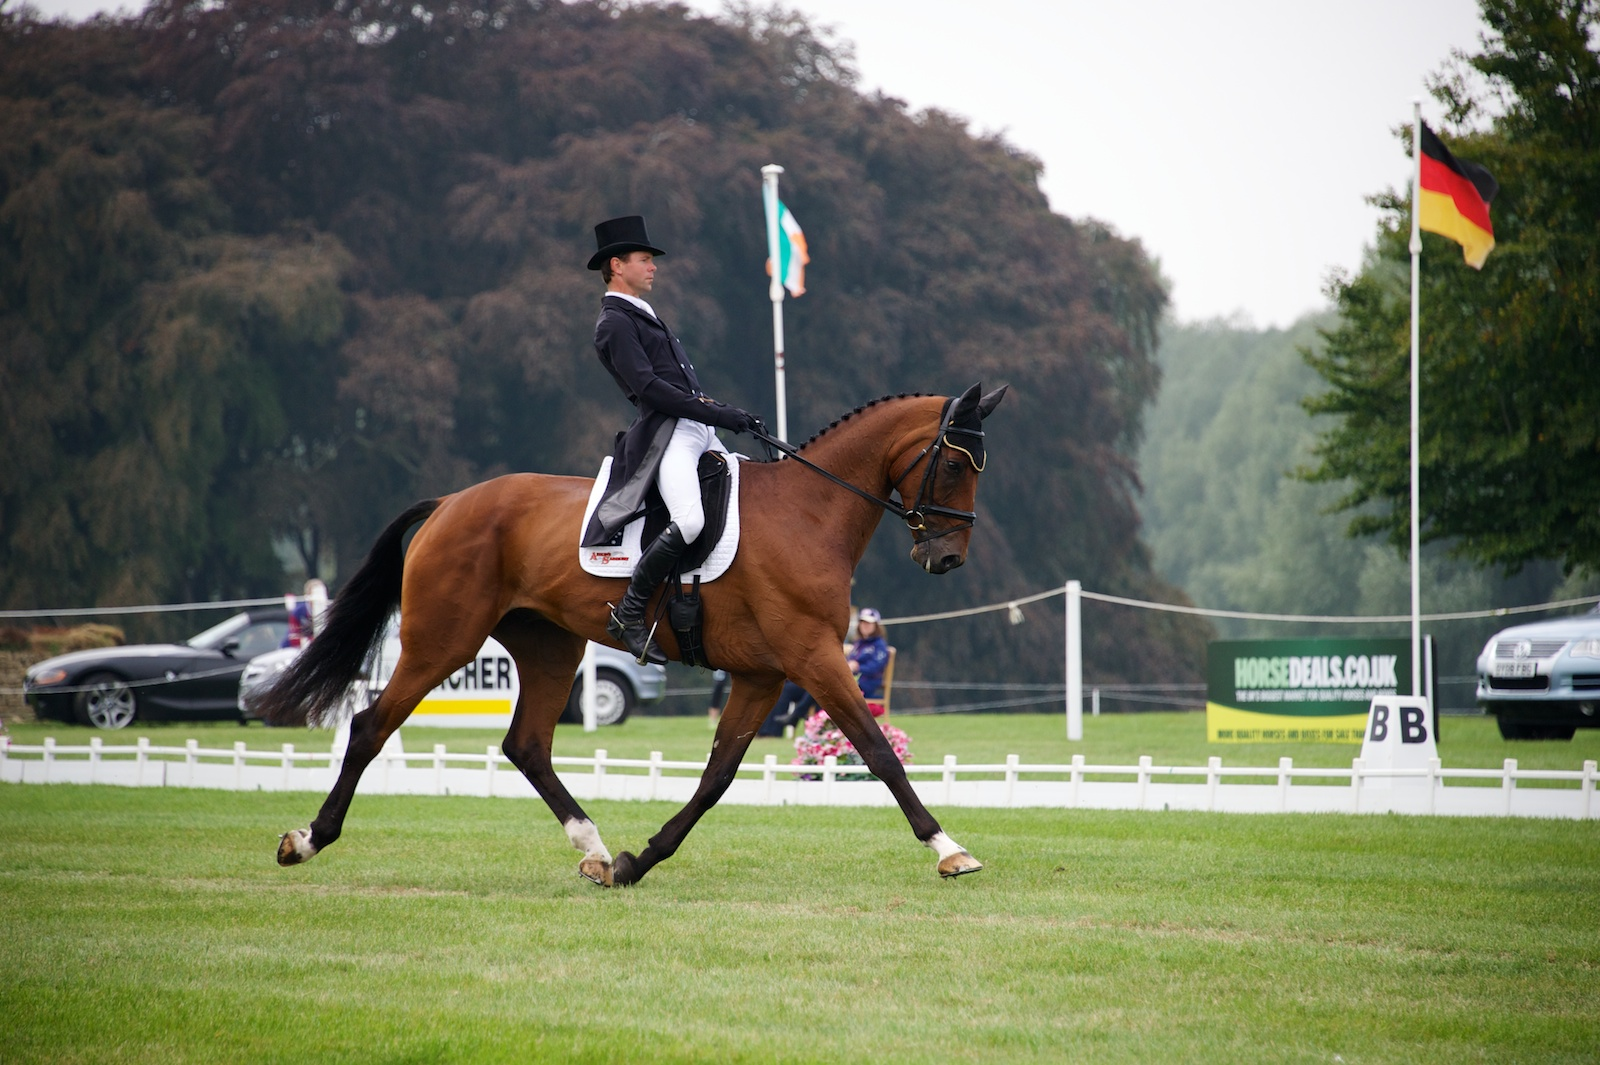 Kevin McNab & Casperelli - 7th After Dressage In The CIC***